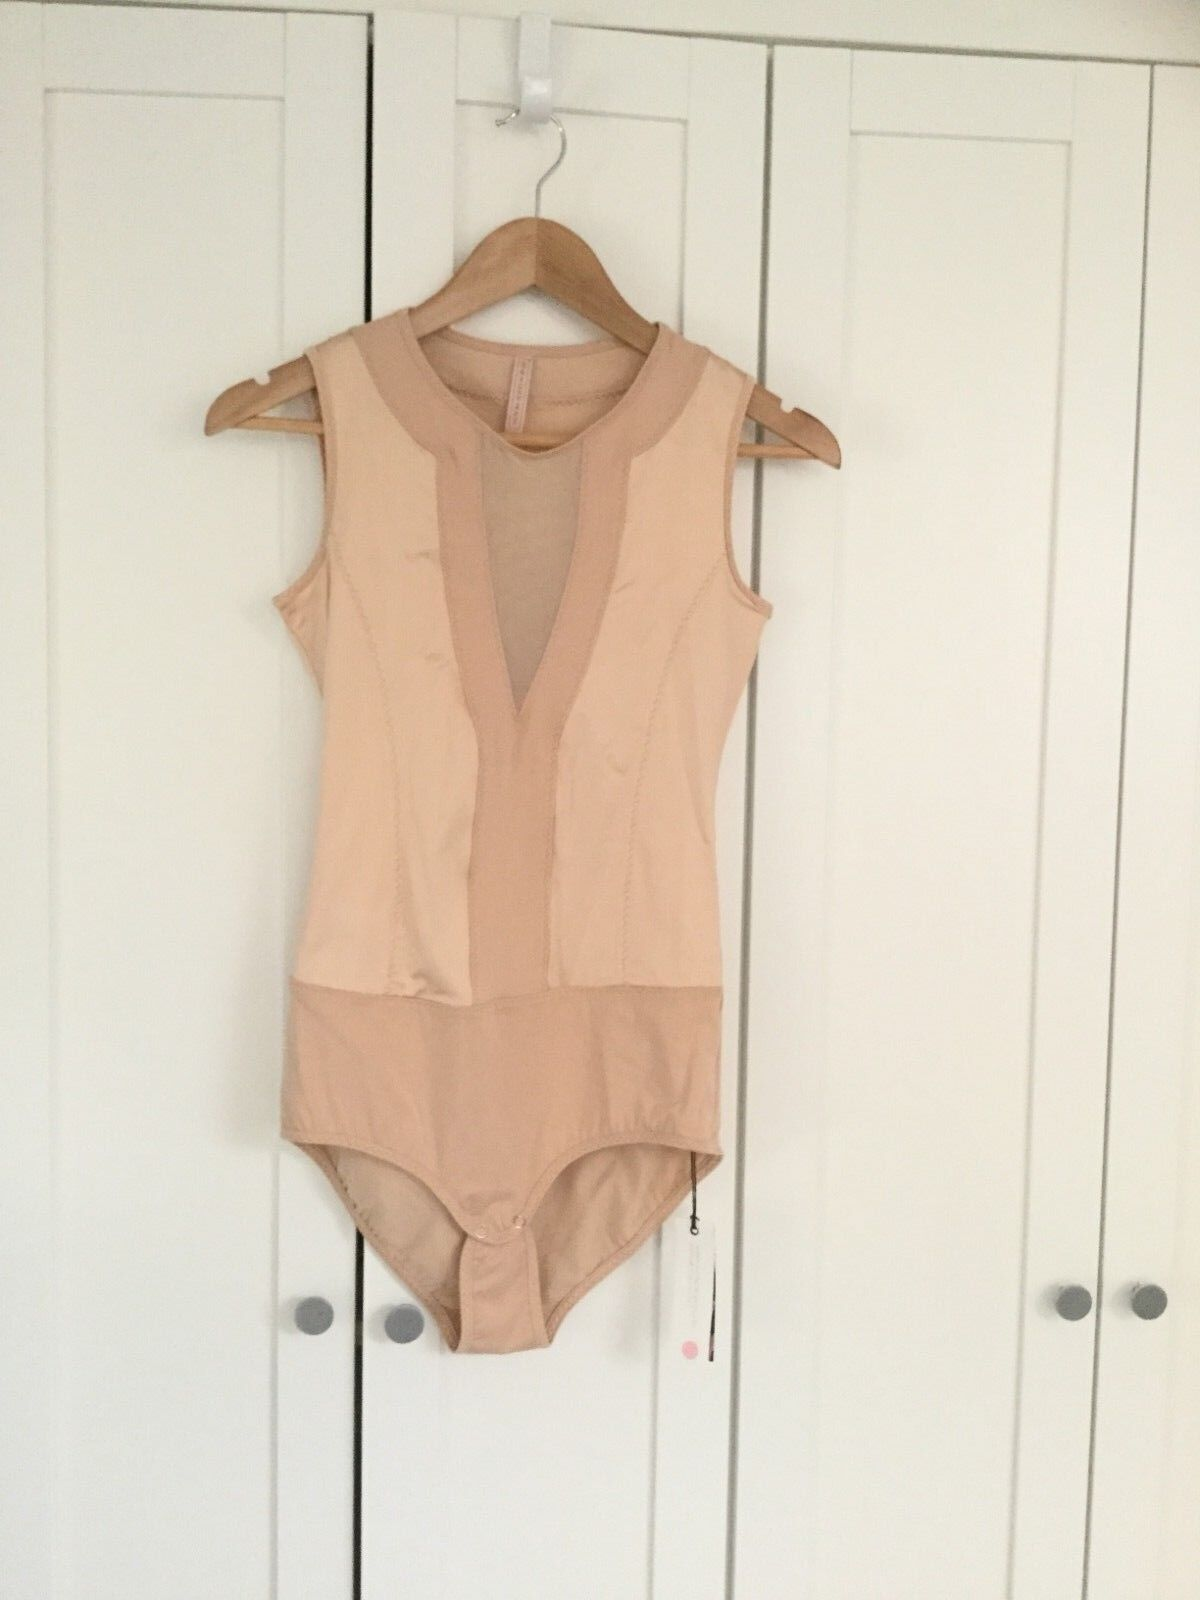 NWT WEAR IN GOOD HEALTH Woherren sz XS Toasted Almond Italian Mesh Bodysuit